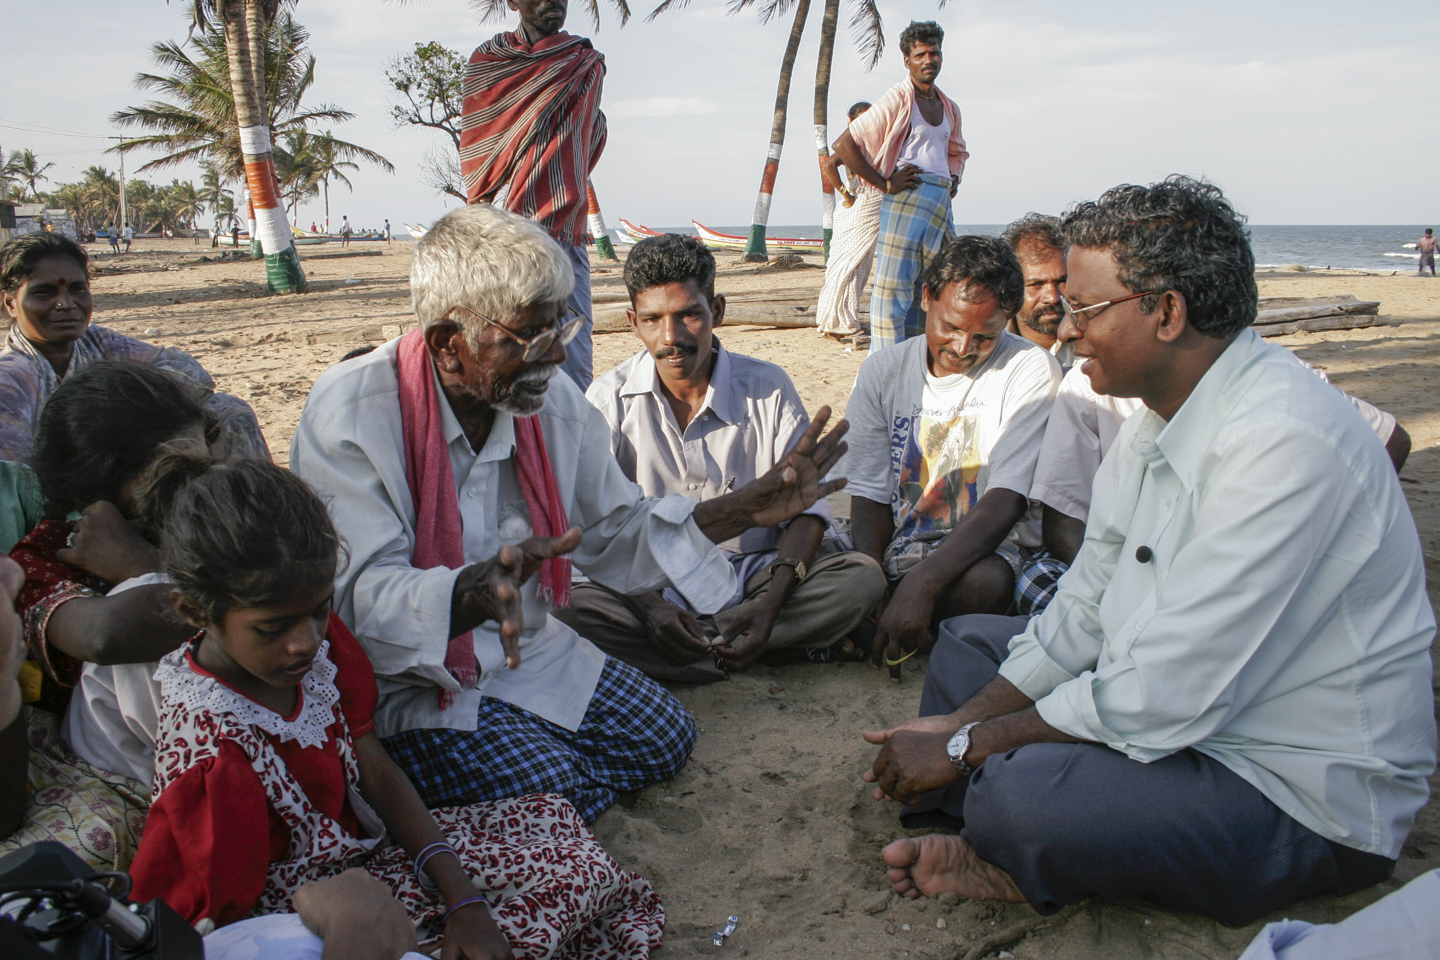 """Fr. Jesumarian, S.J. meets with a group of villagers affected by the tsunami. He is a lawyer who has led a crusade to combat discrimination against India's Dalits, formerly called """"untouchables,"""" the lowest Hindu Caste."""